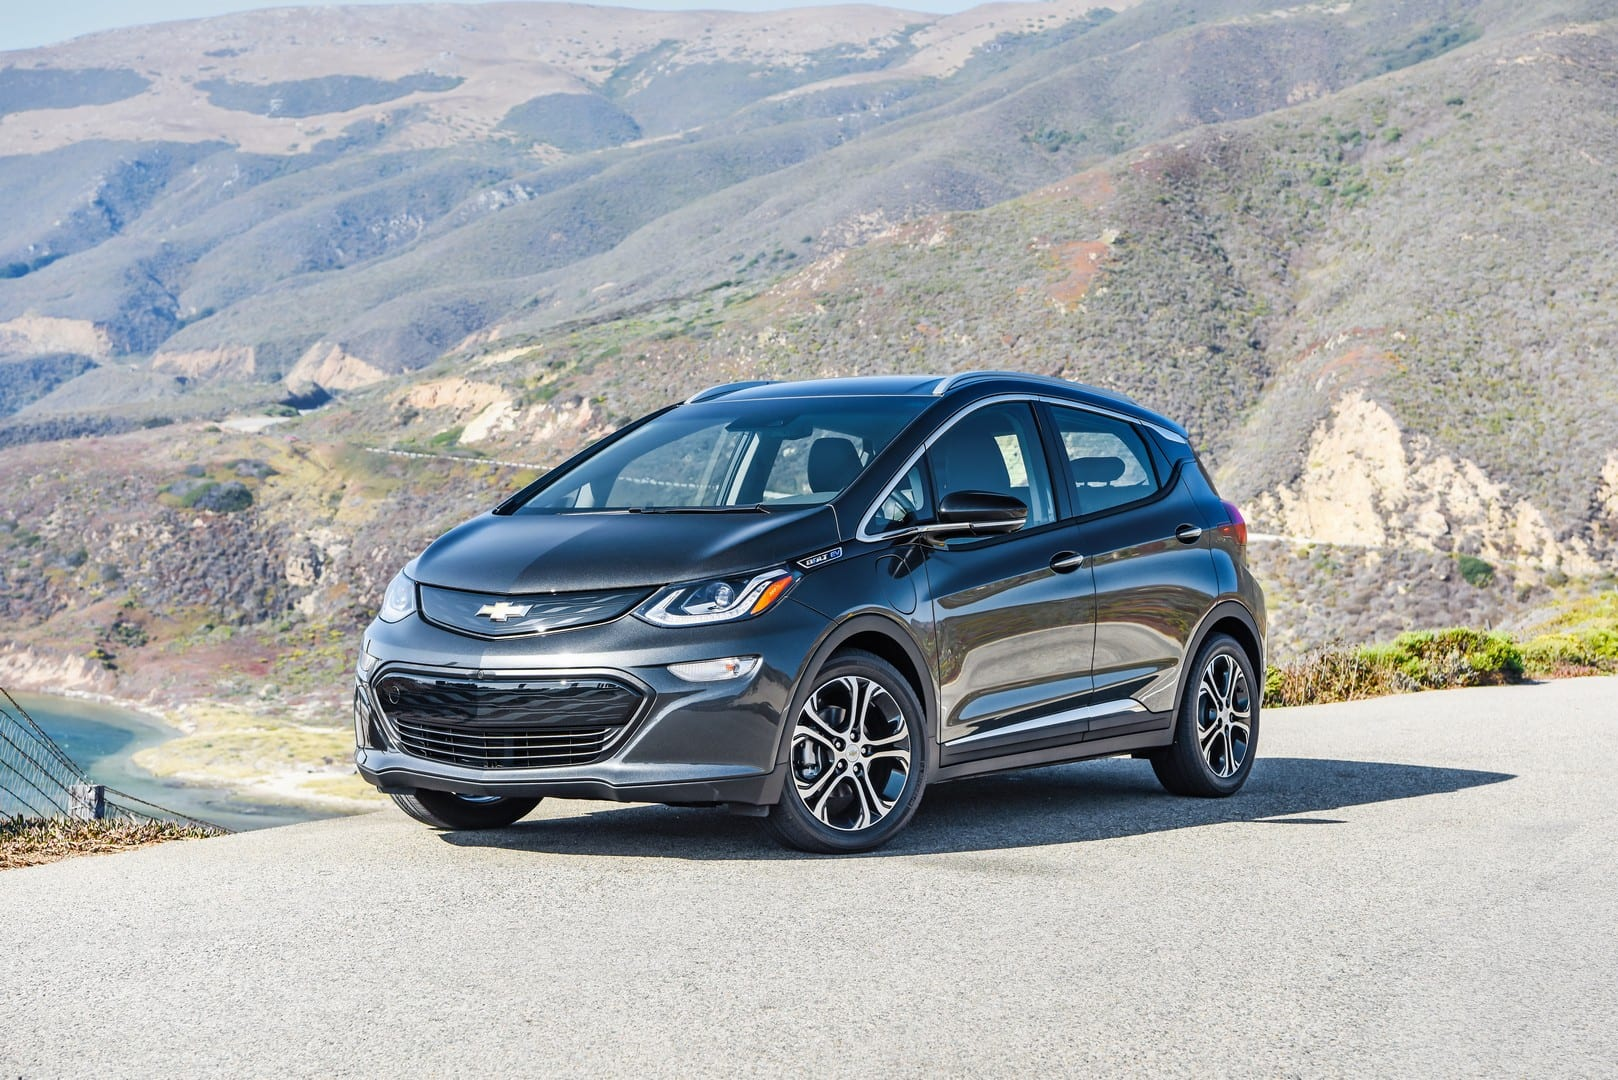 2019 Chevrolet Bolt Launched In The Uae Carprices Ae